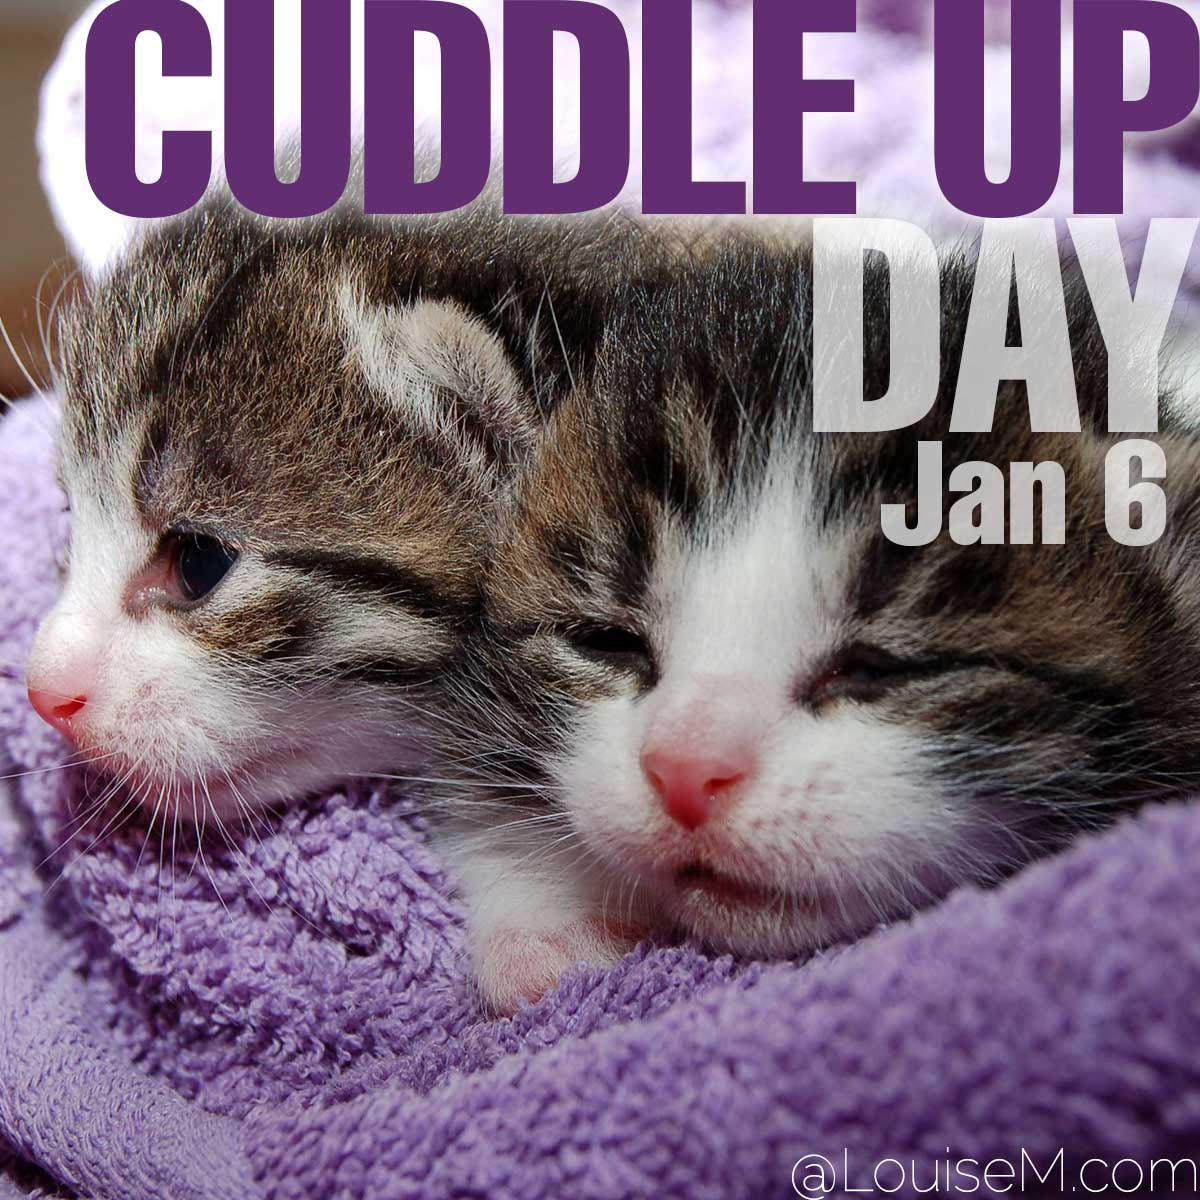 Cuddle Up Day text on photo of two cuddling cats.